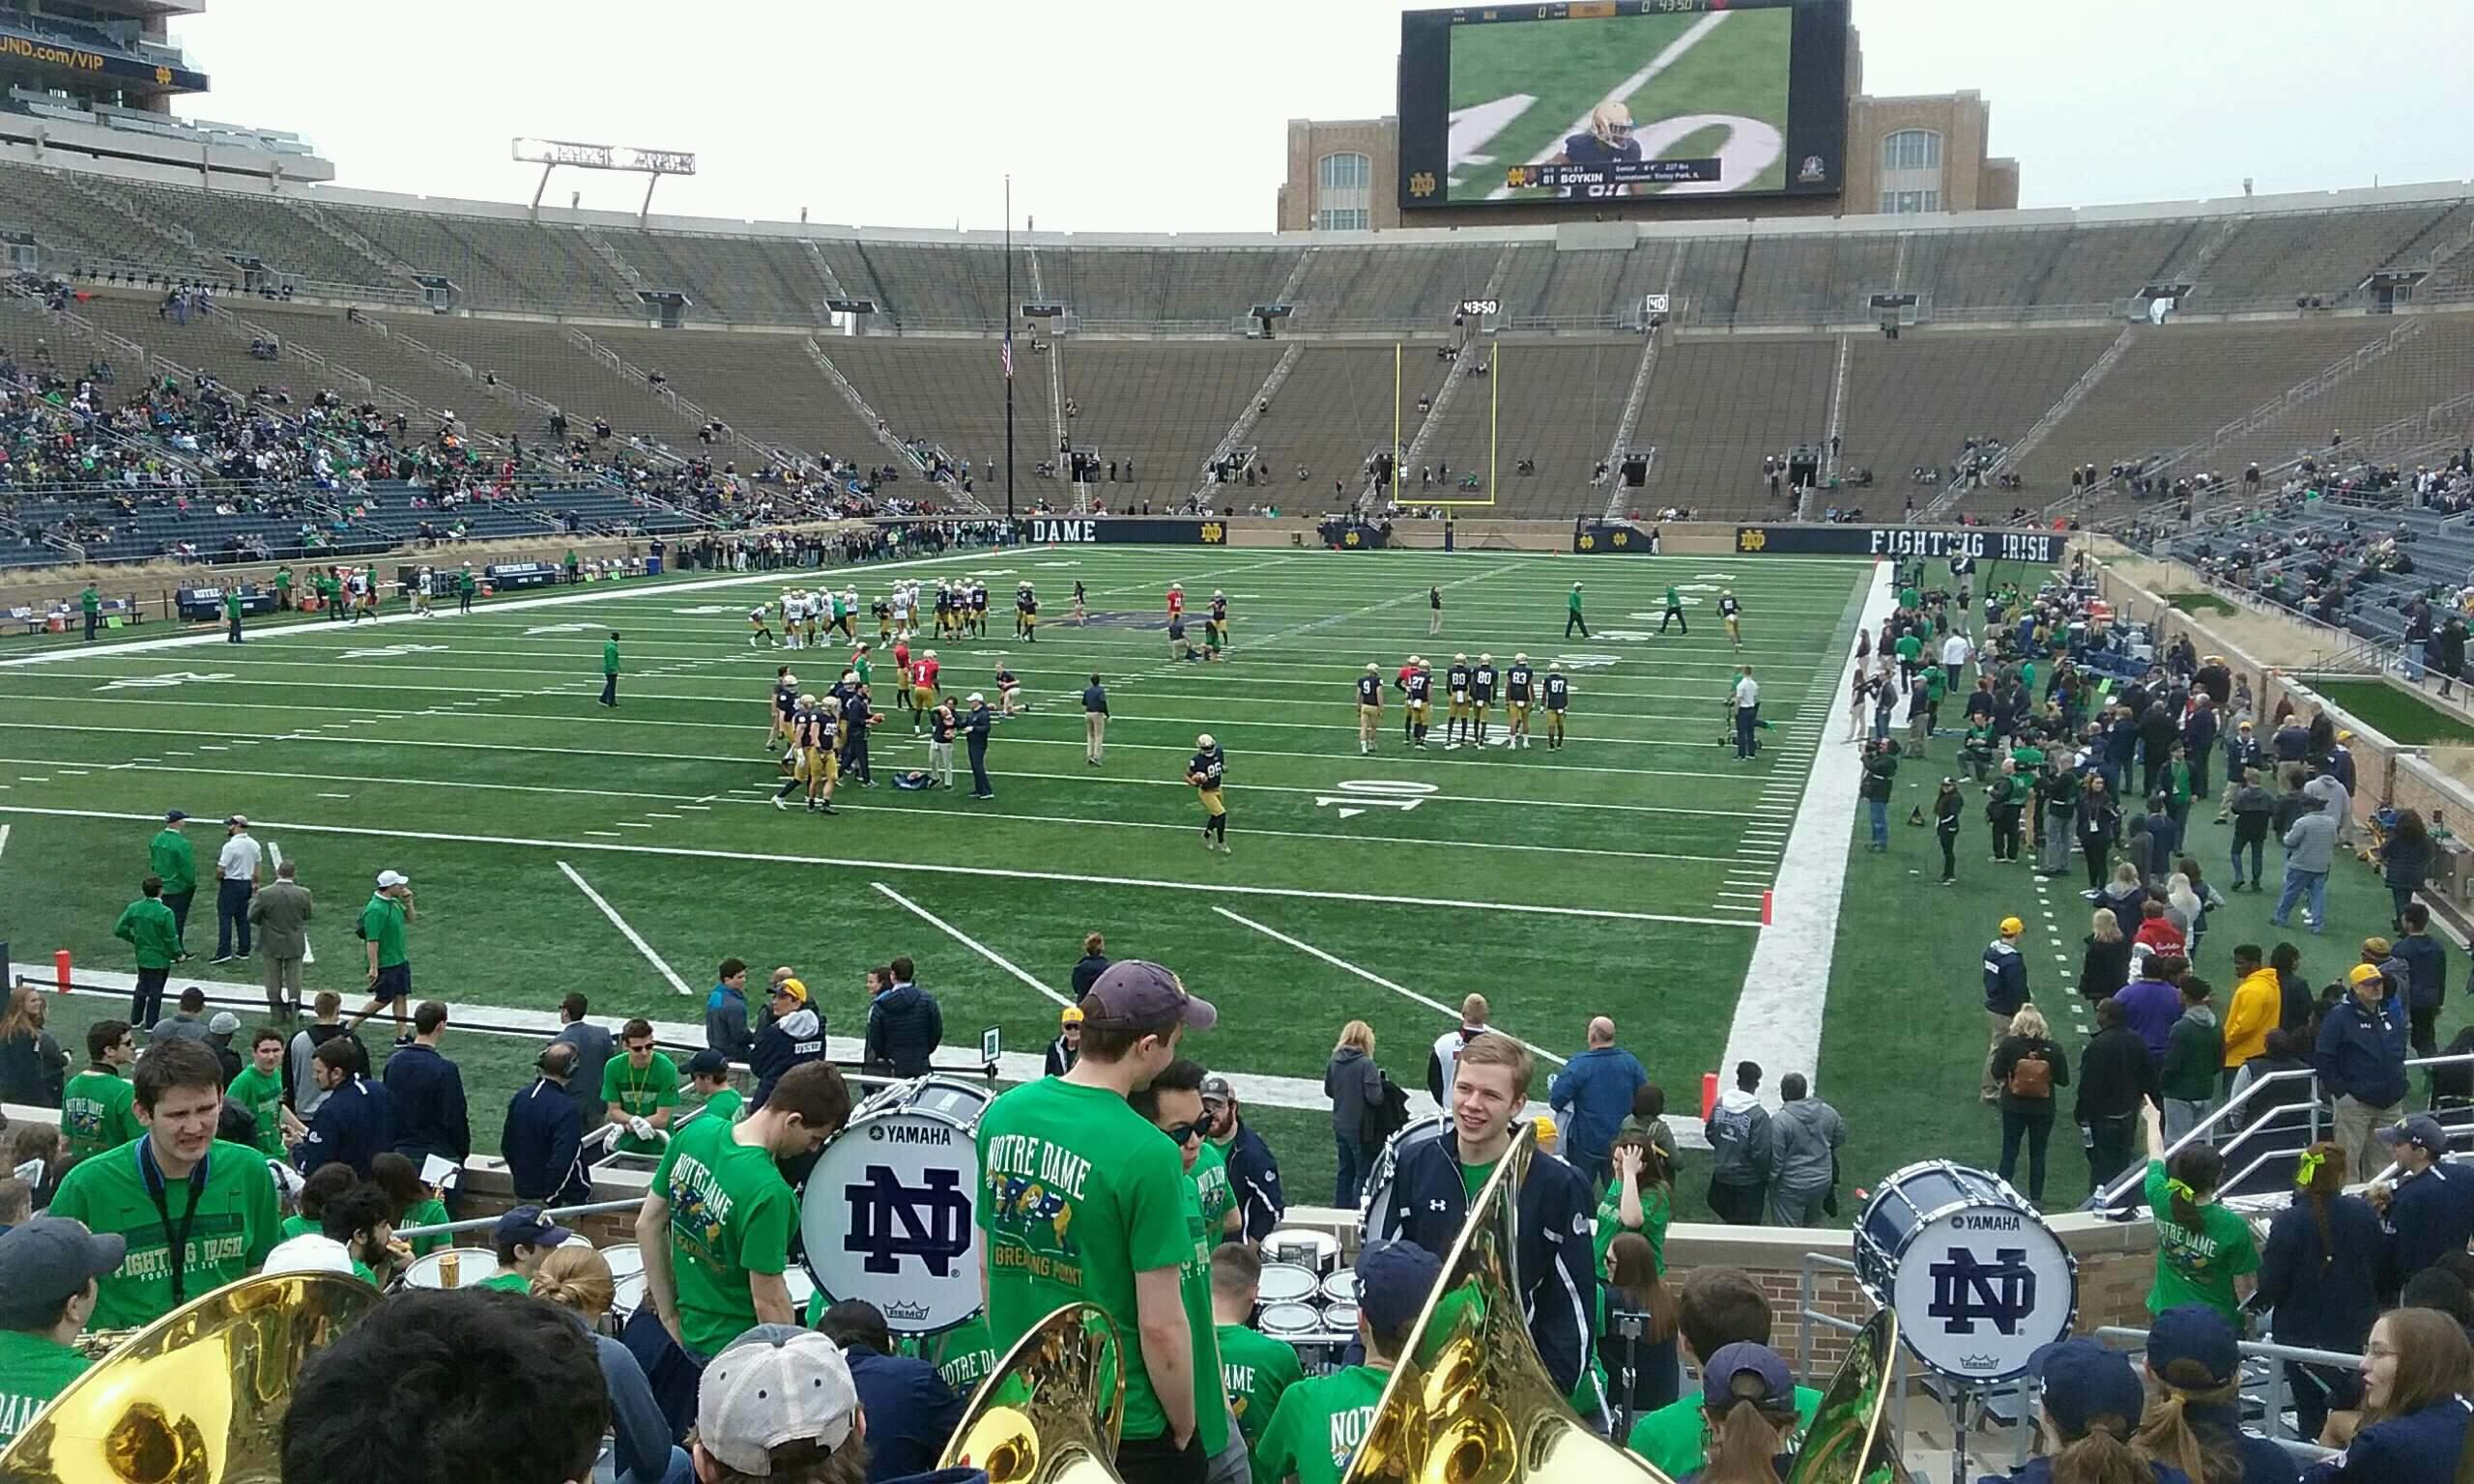 Notre Dame Stadium Section 35 Row 23 Seat 8